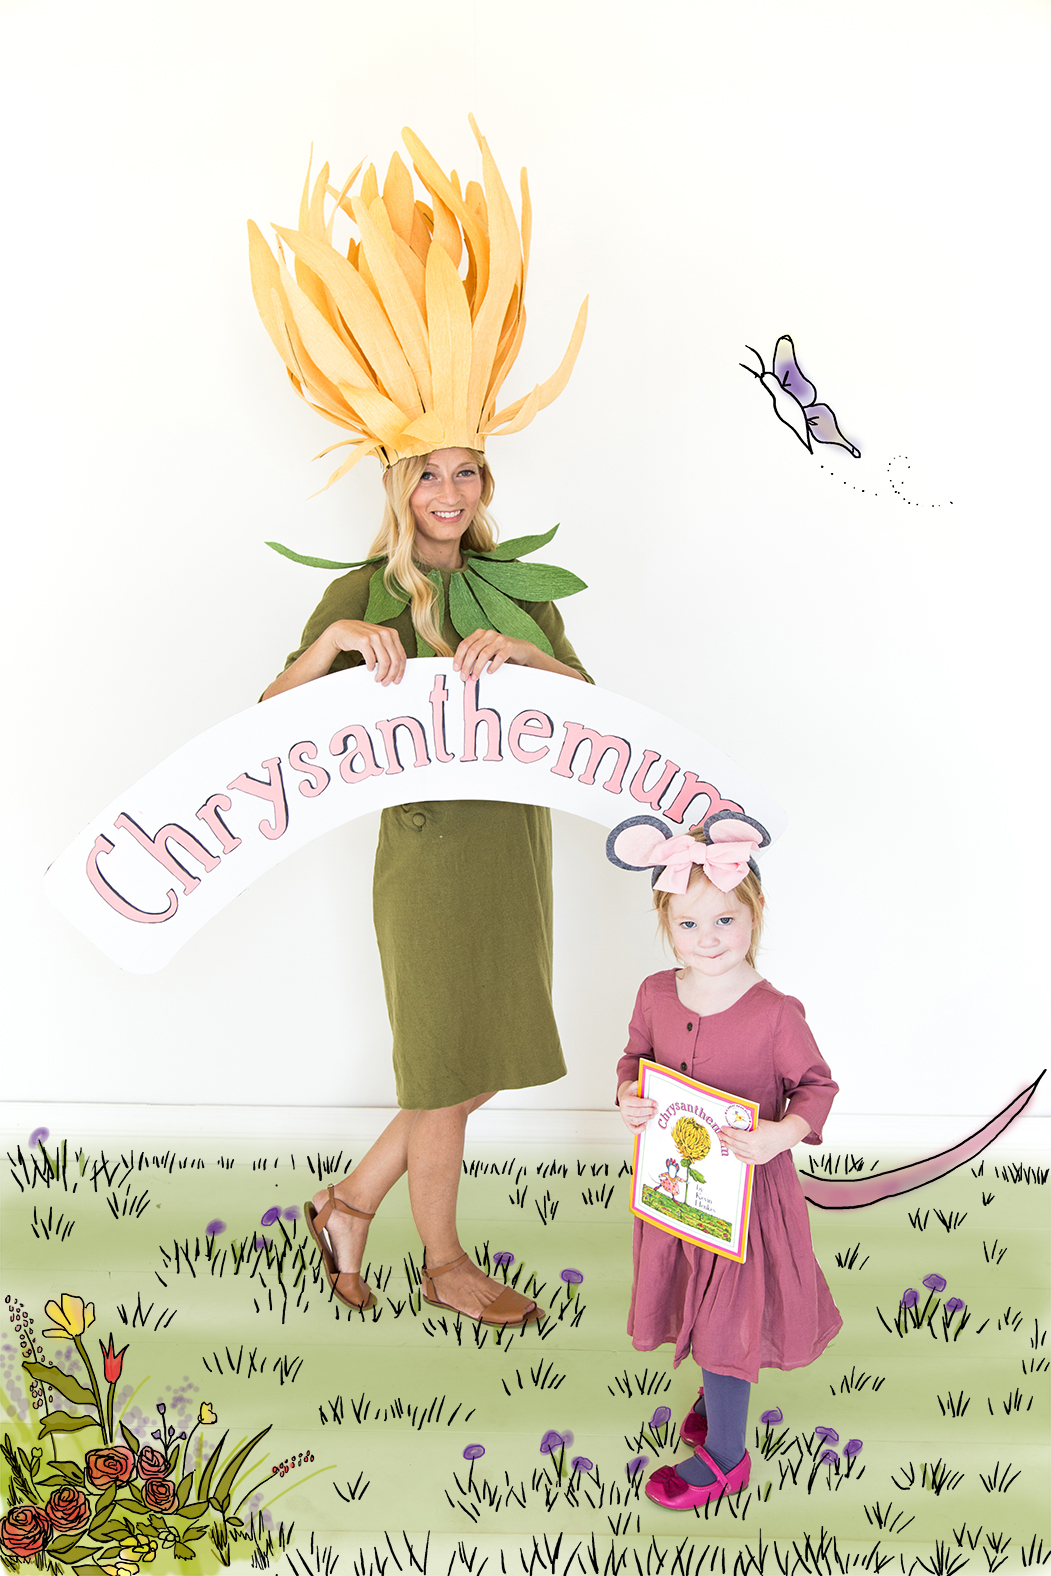 A mom wearing a paper flower costume and a daughter dressed as a mouse pose in their costumes